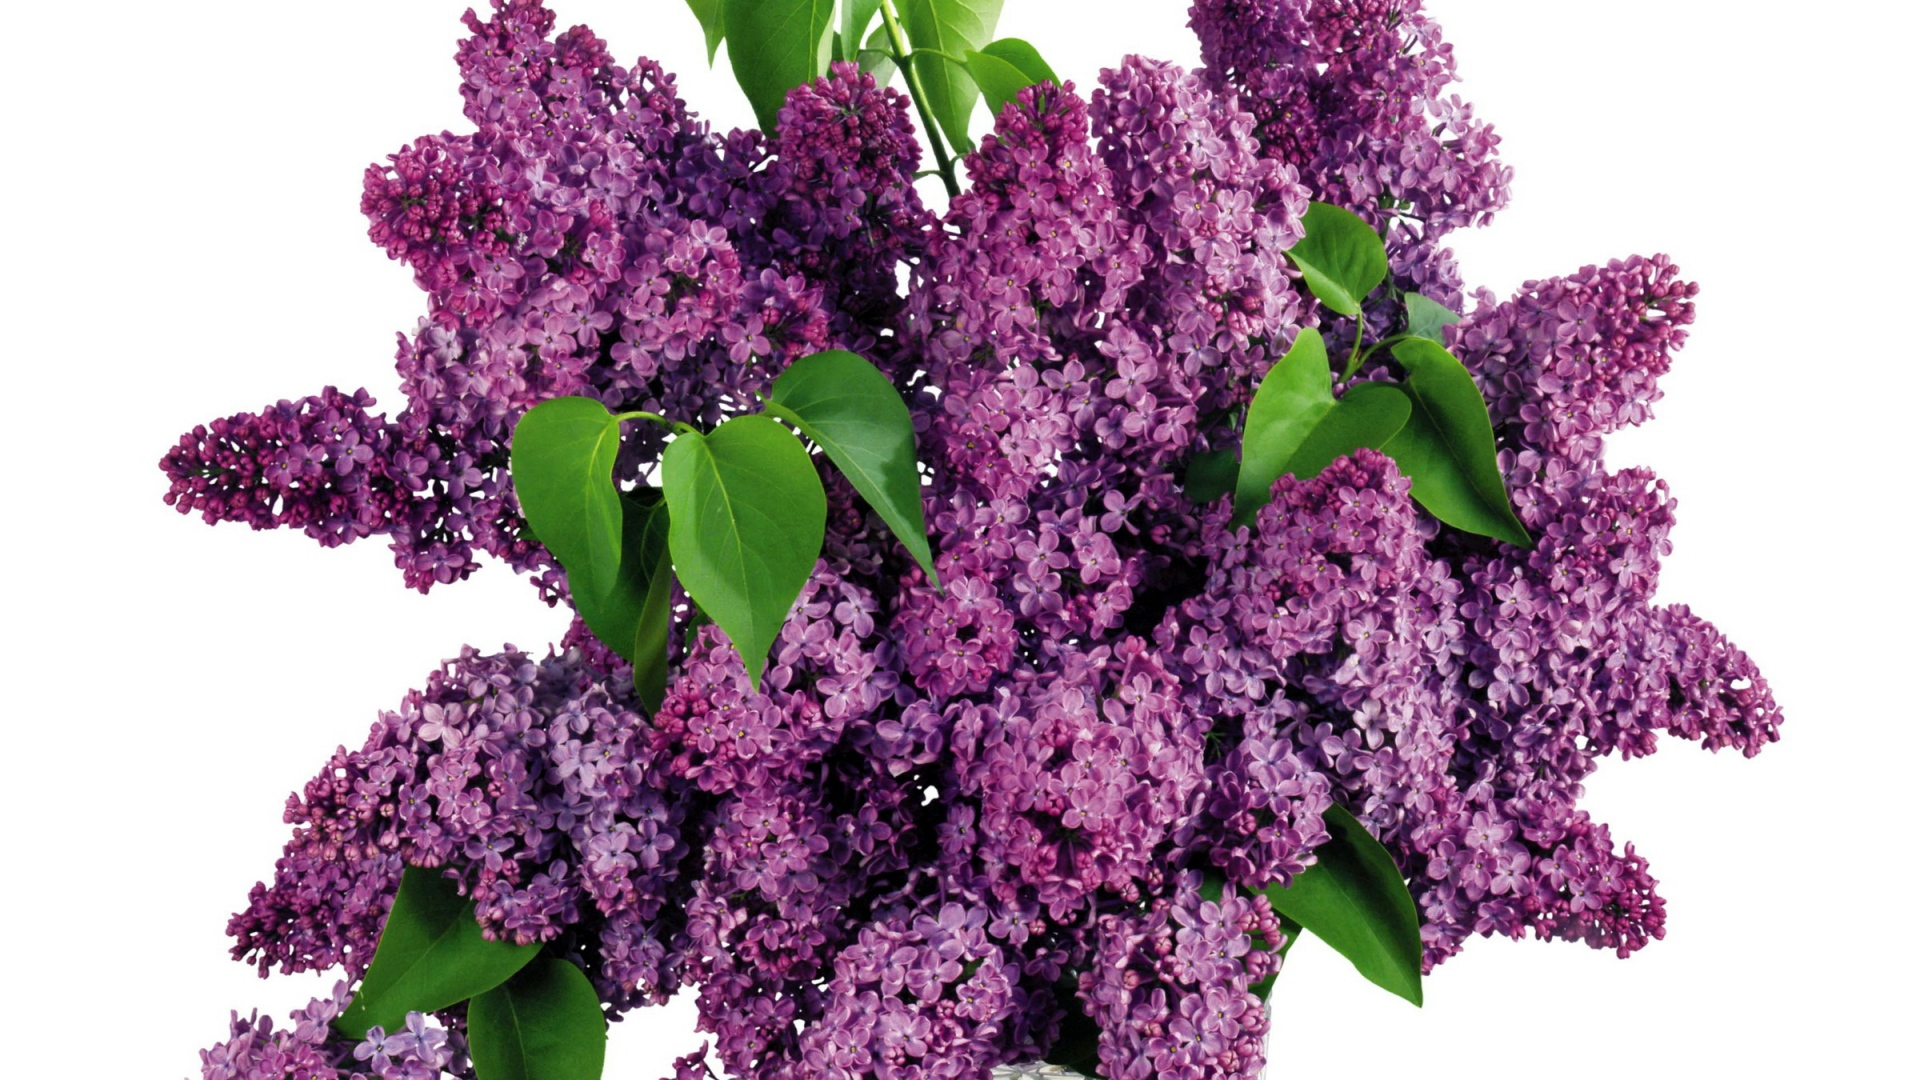 Download Wallpaper 1920x1080 Lilacs, Bouquet, Vase, Spring